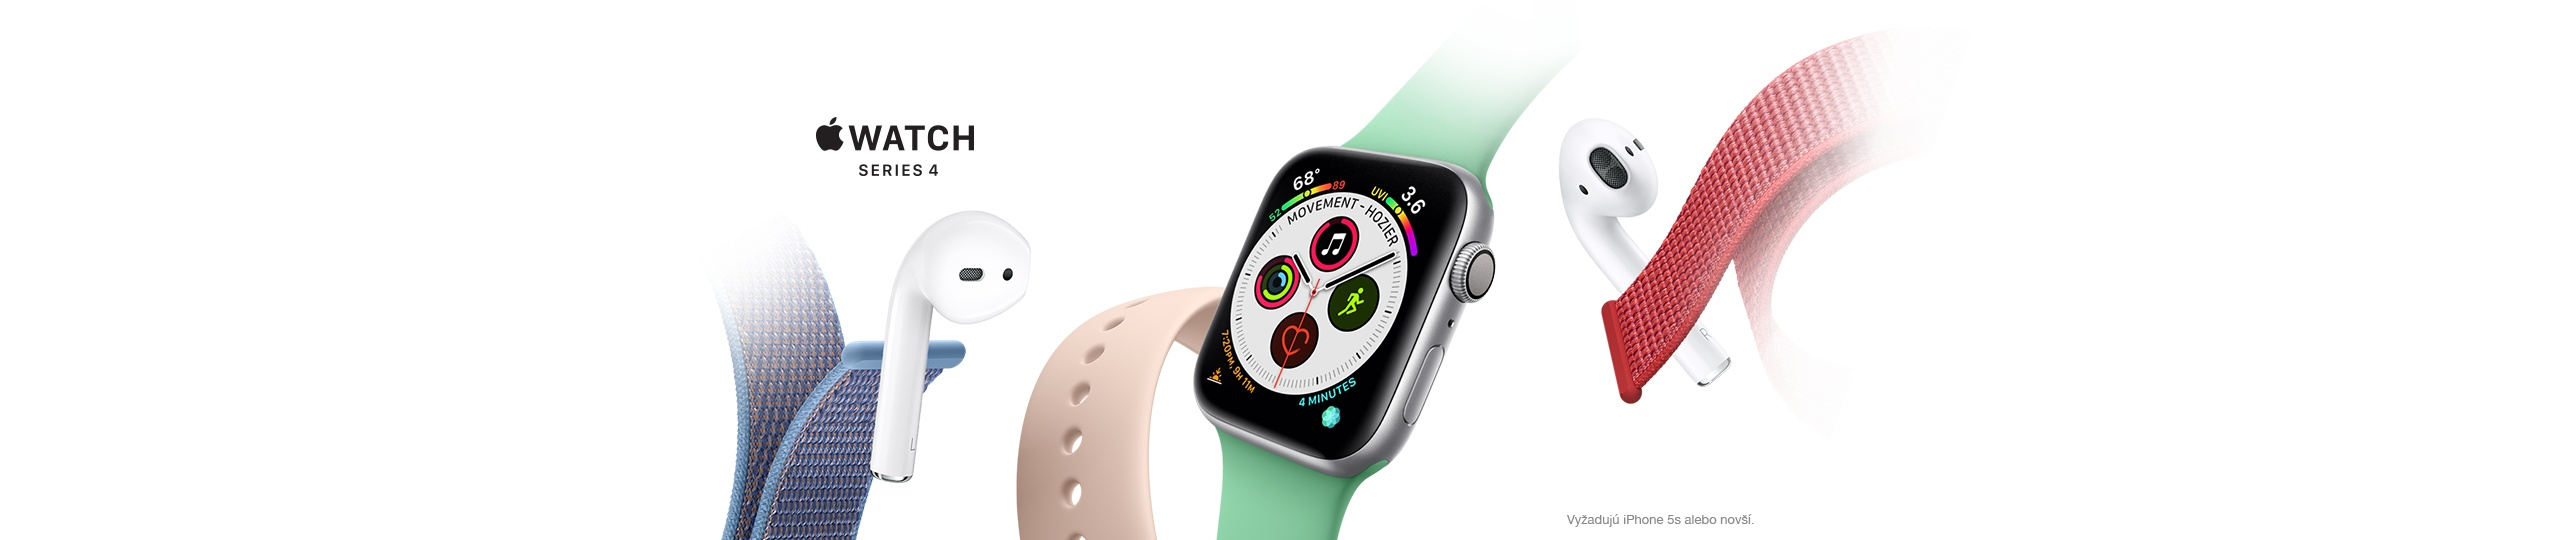 Q319 - Apple Watch S4 - Season